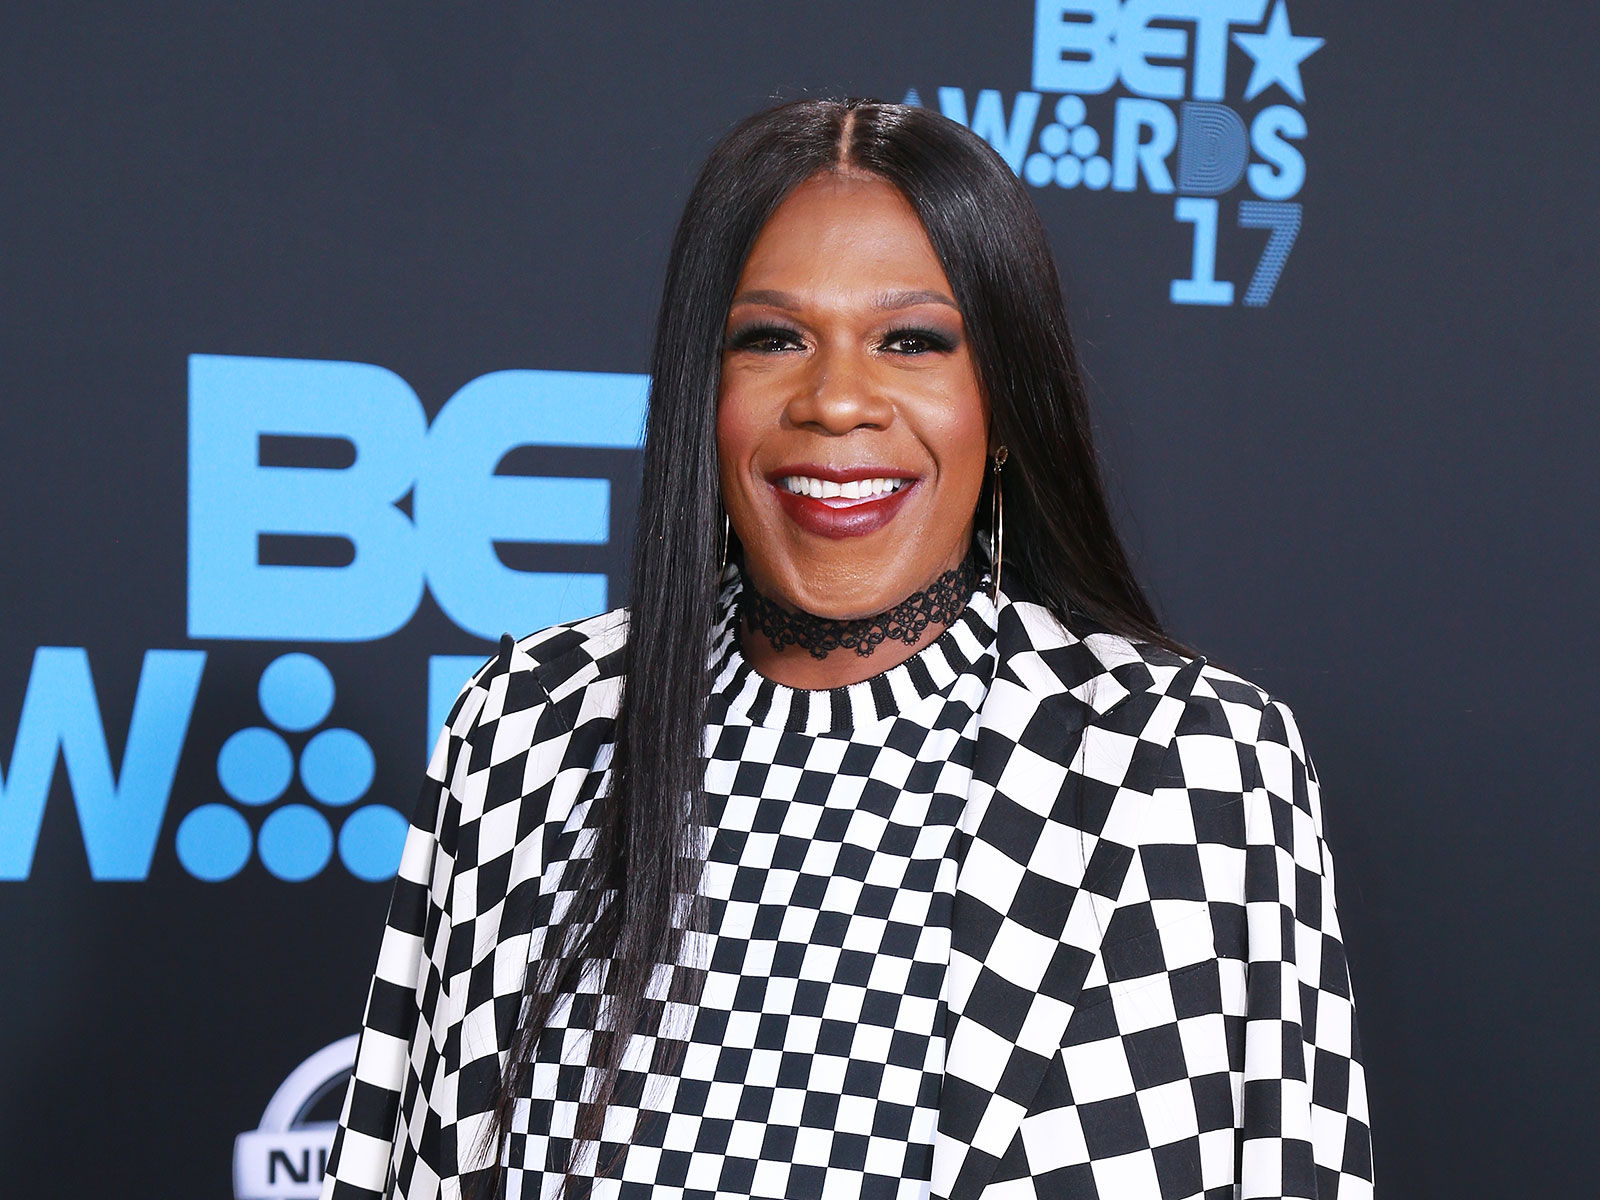 'Queen of Bounce' Big Freedia Is Getting Her Own Rosé and Cookbook